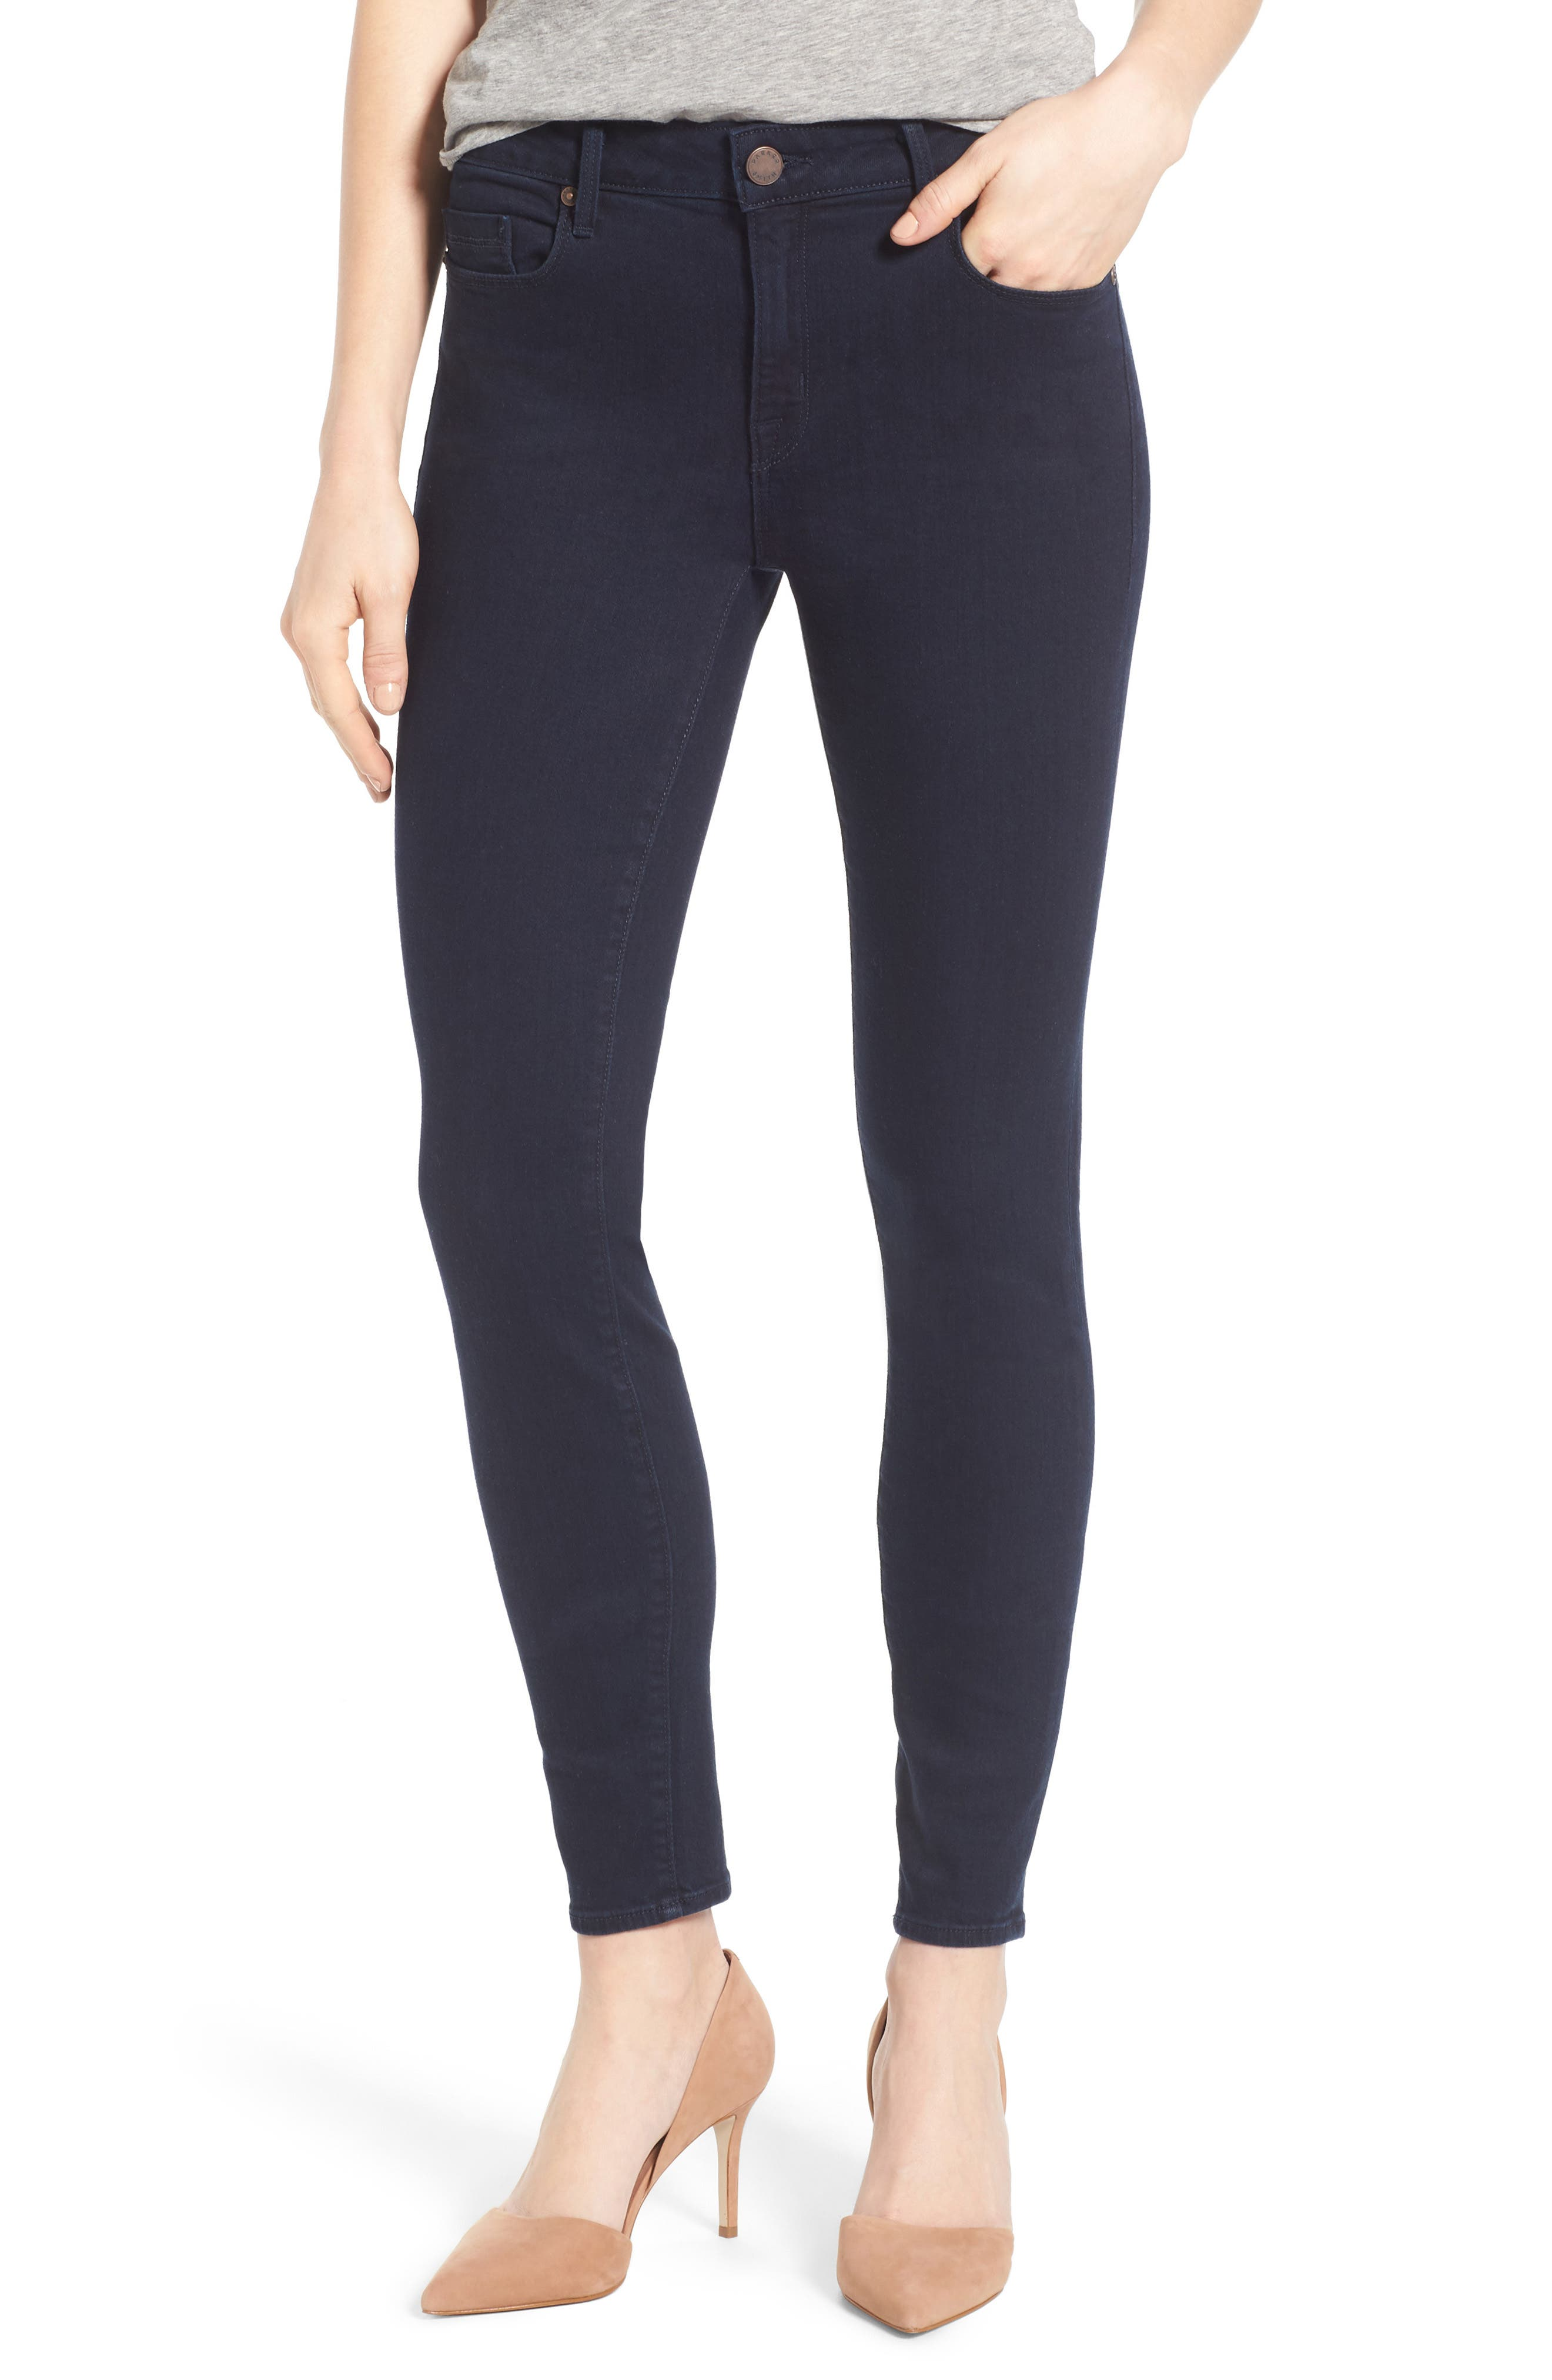 PARKER SMITH Ava Stretch Skinny Jeans